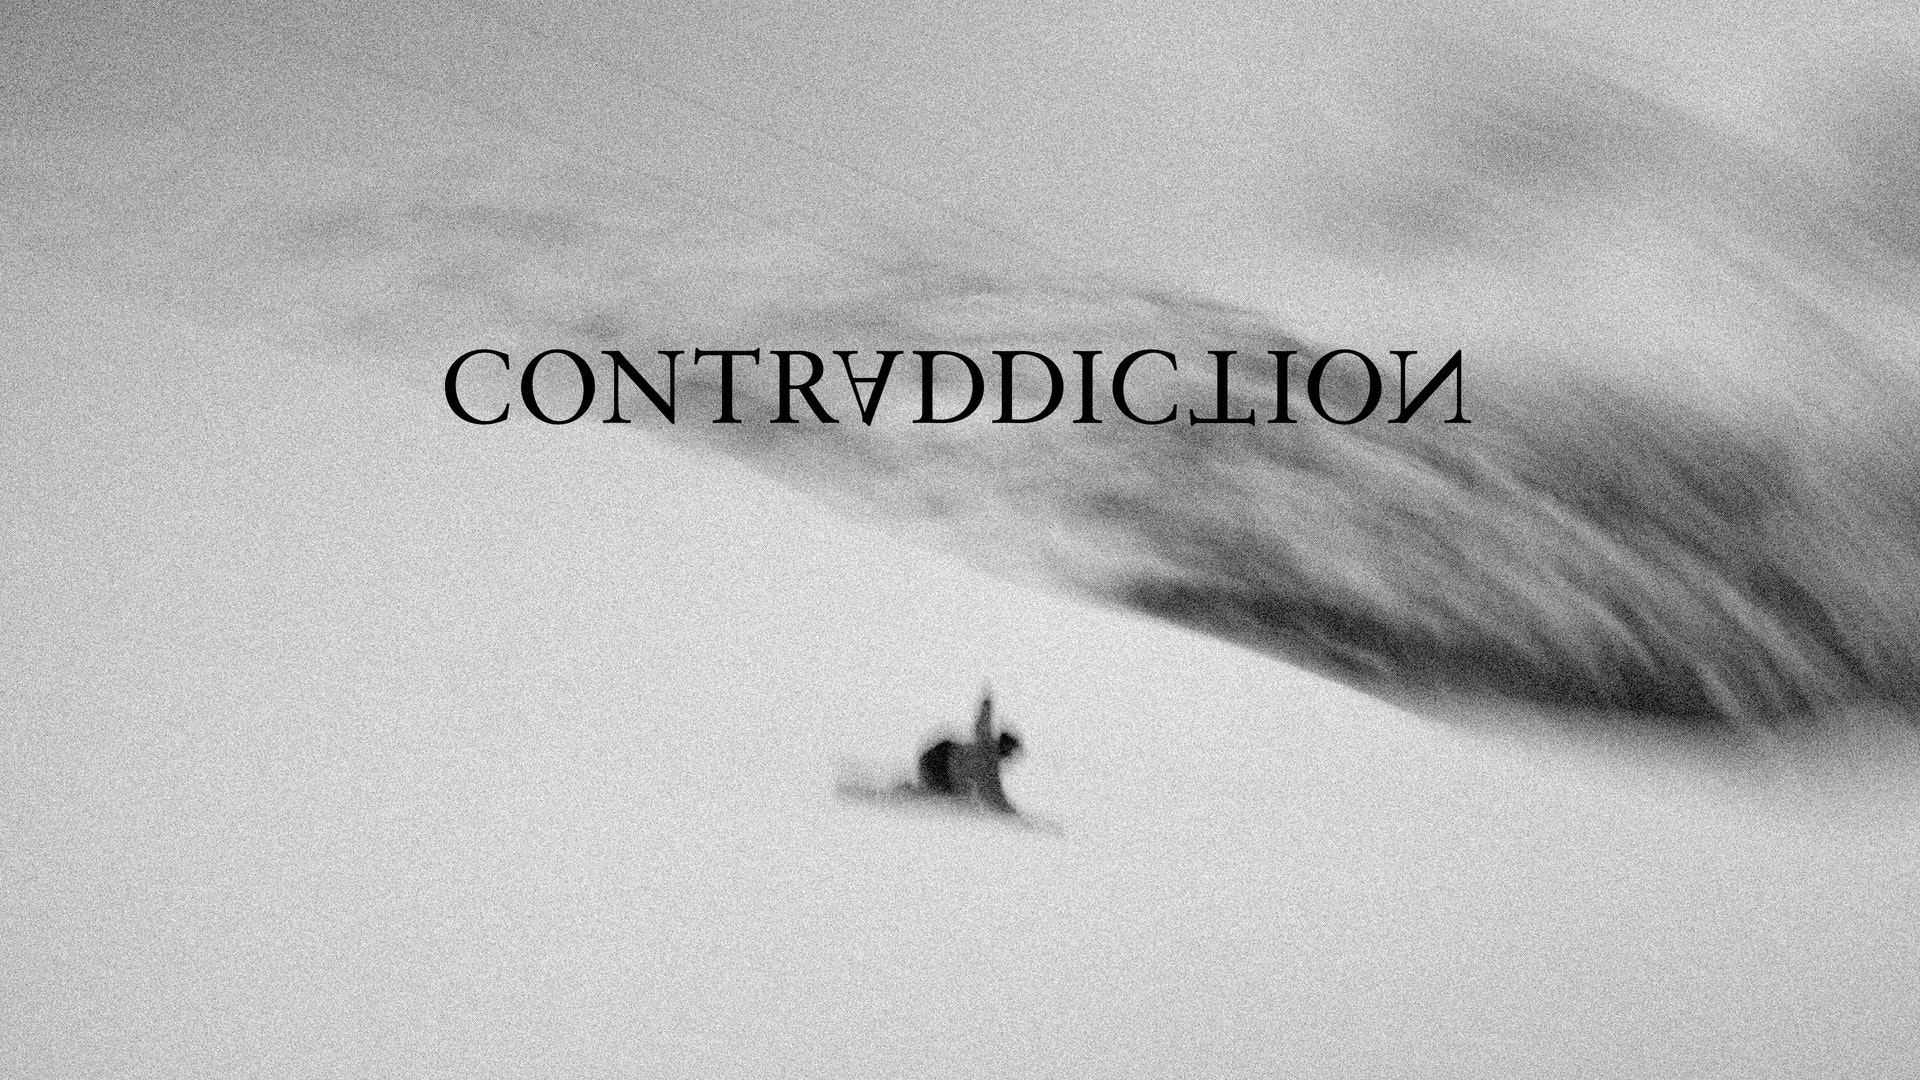 Contraddiction | Vimeo Video of the Month